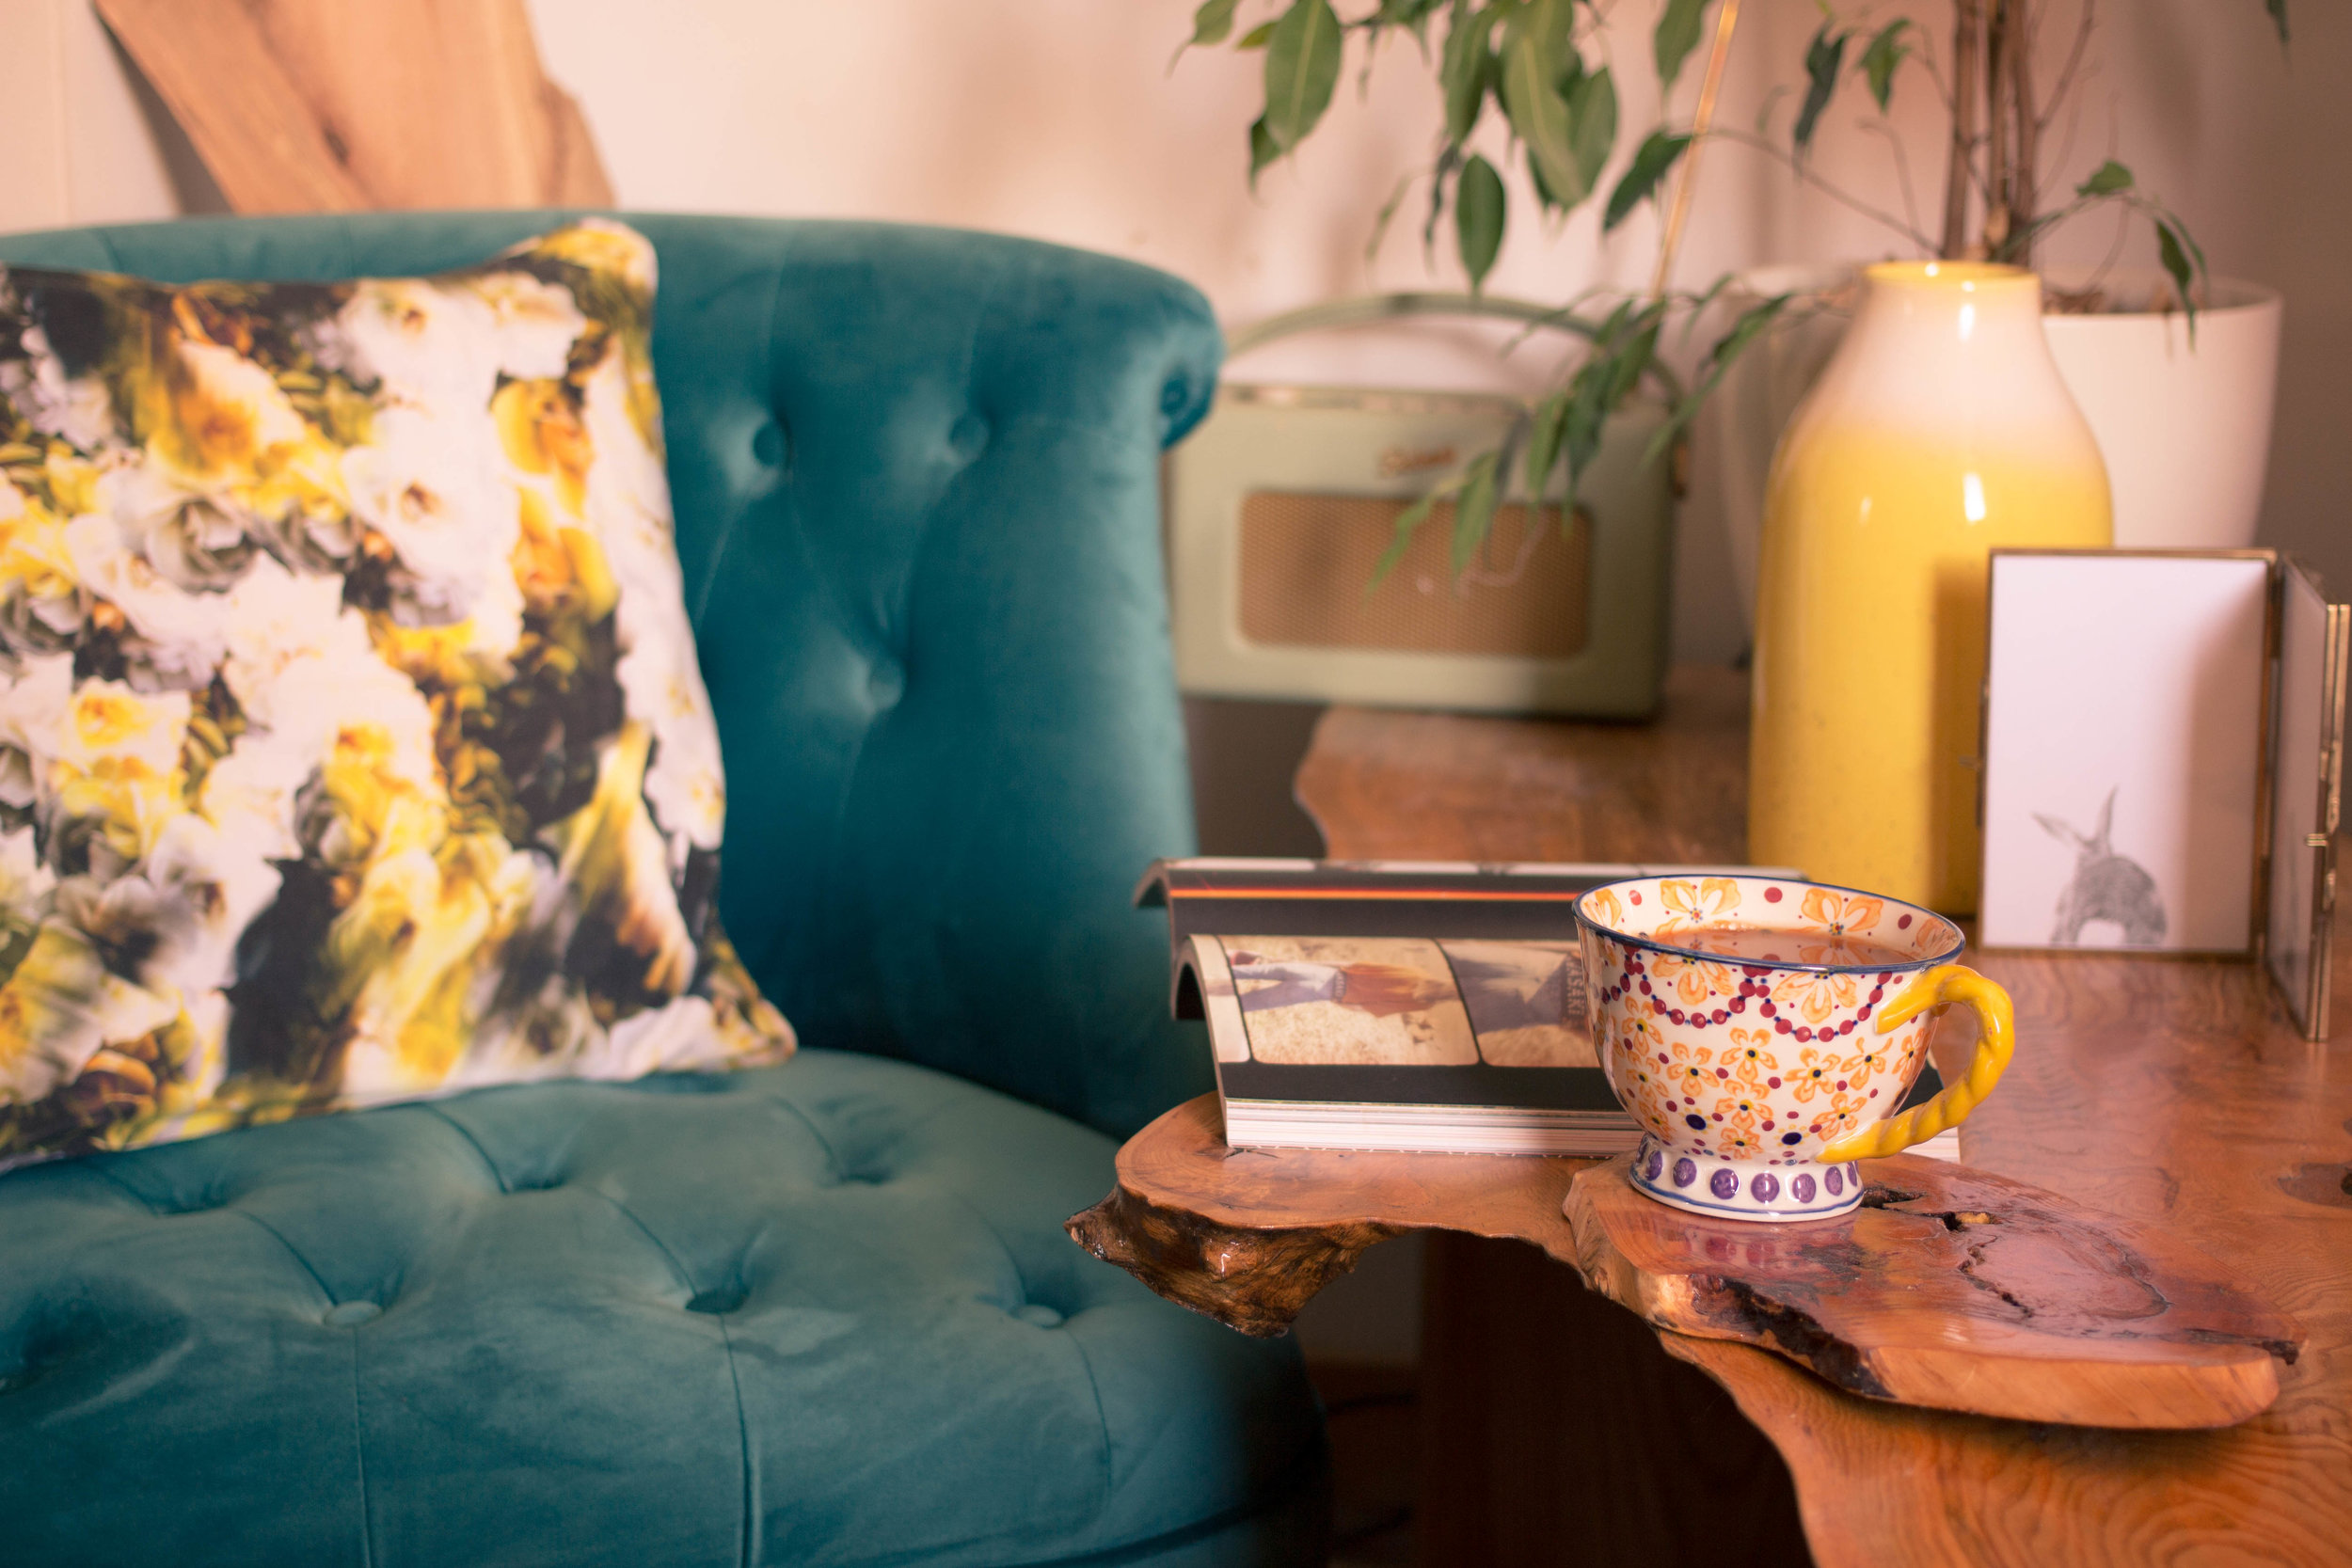 Styling-a-cosy-corner-rush-and-teal-4.jpg